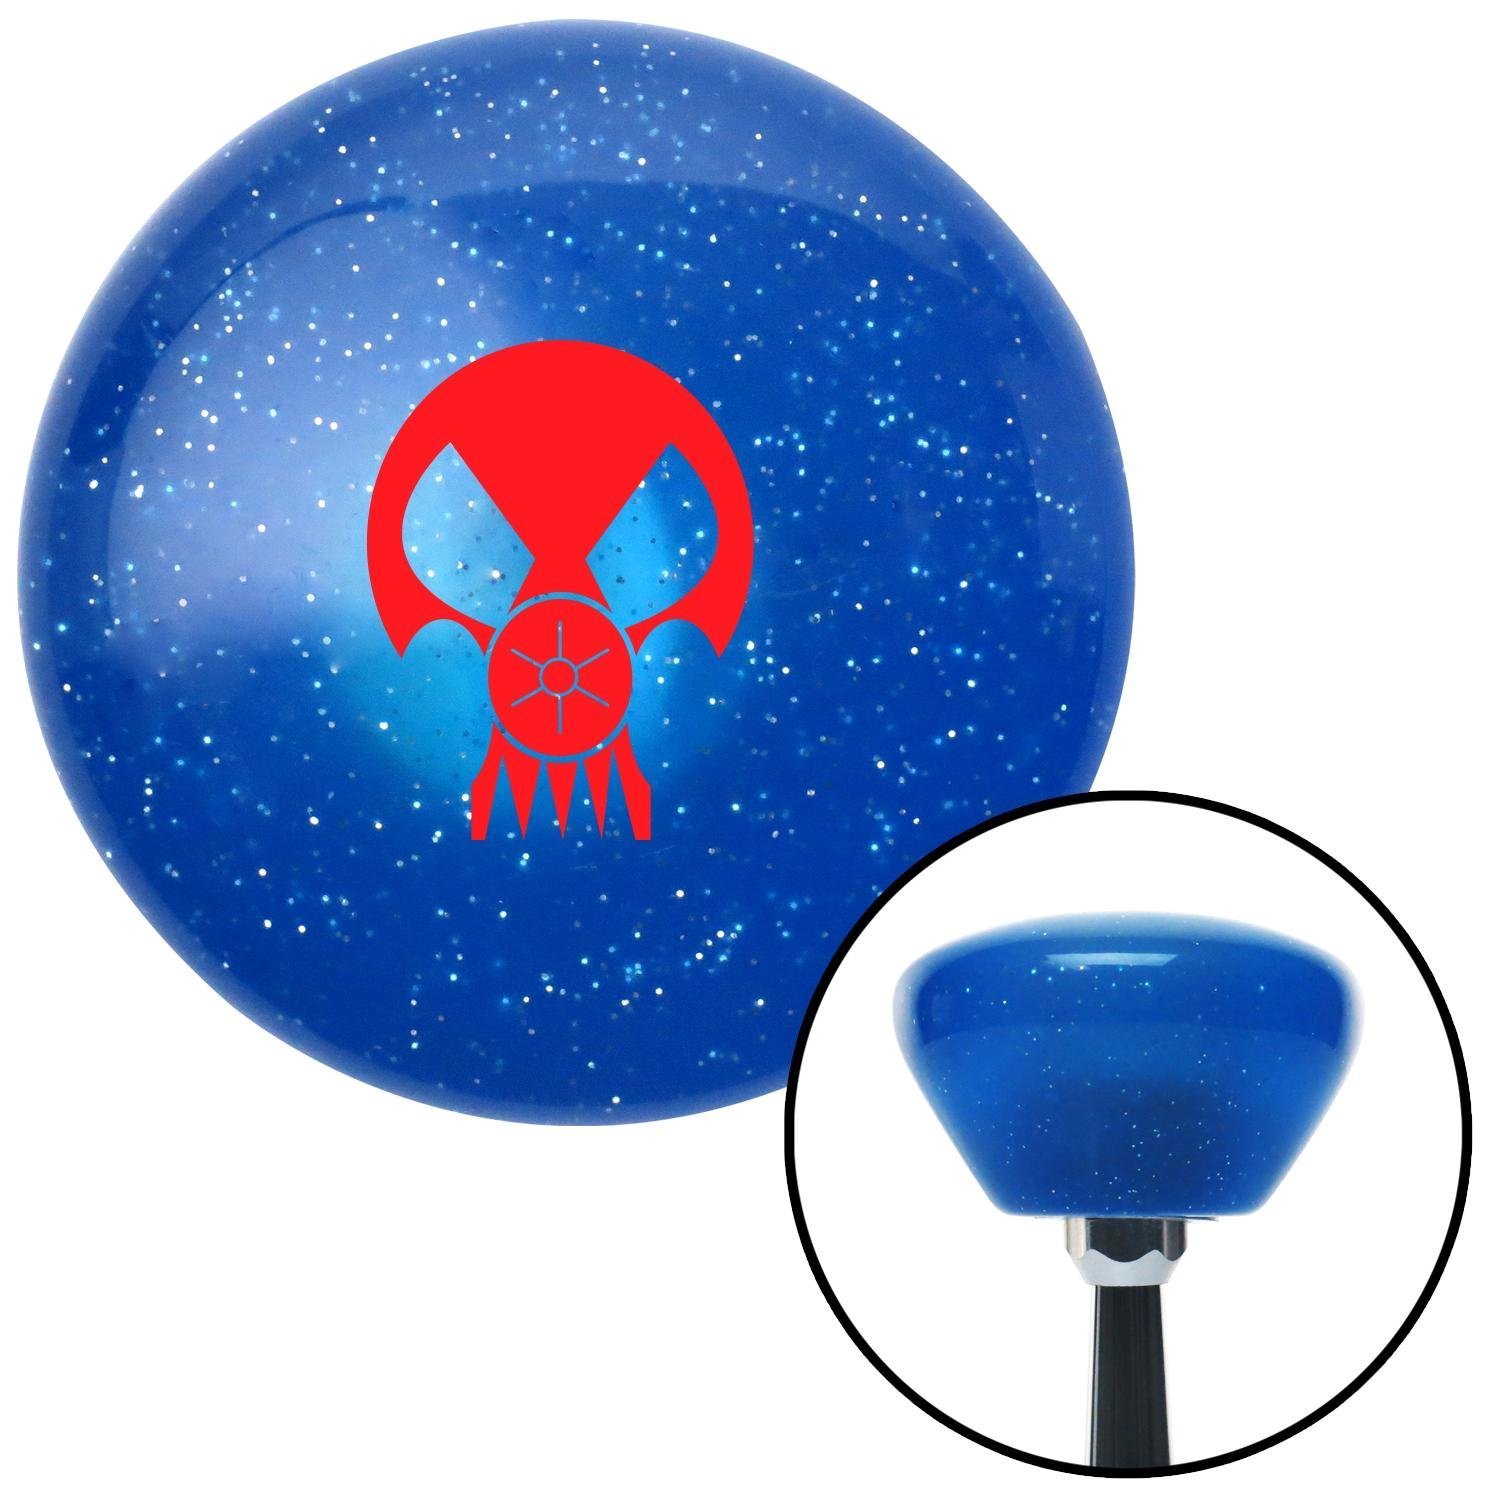 American Shifter 187929 Blue Retro Metal Flake Shift Knob with M16 x 1.5 Insert Red Skull Gas Mask